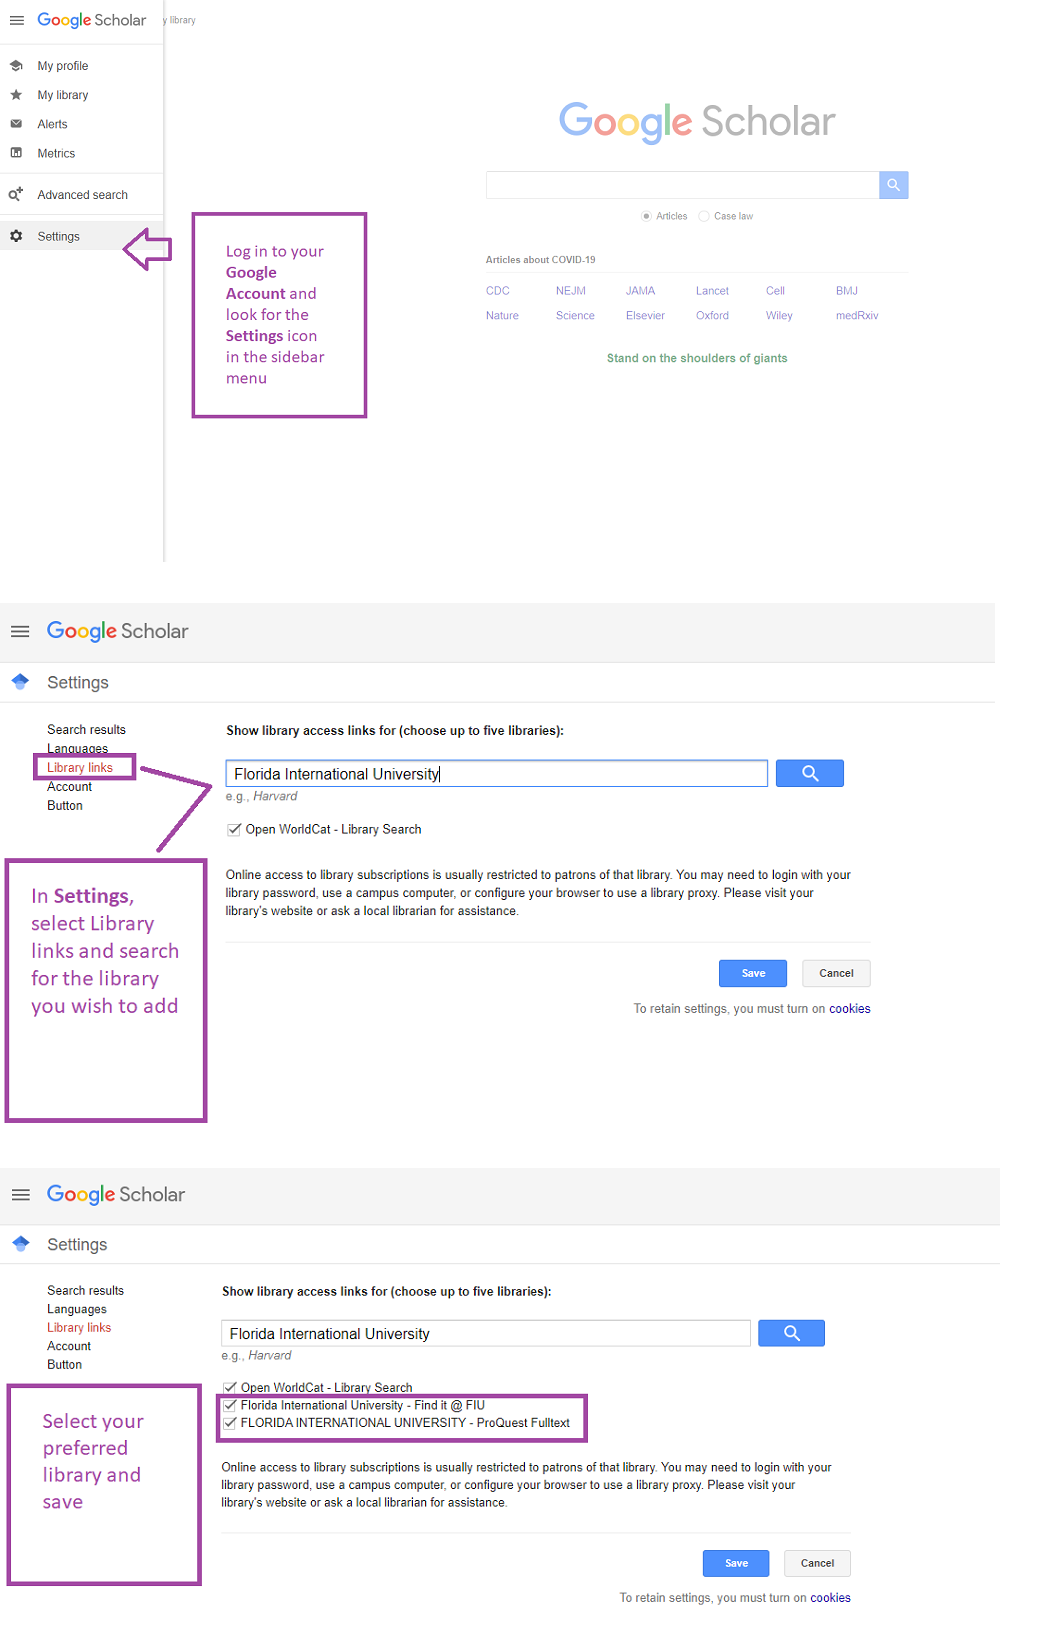 Google Scholar add a library screenshot